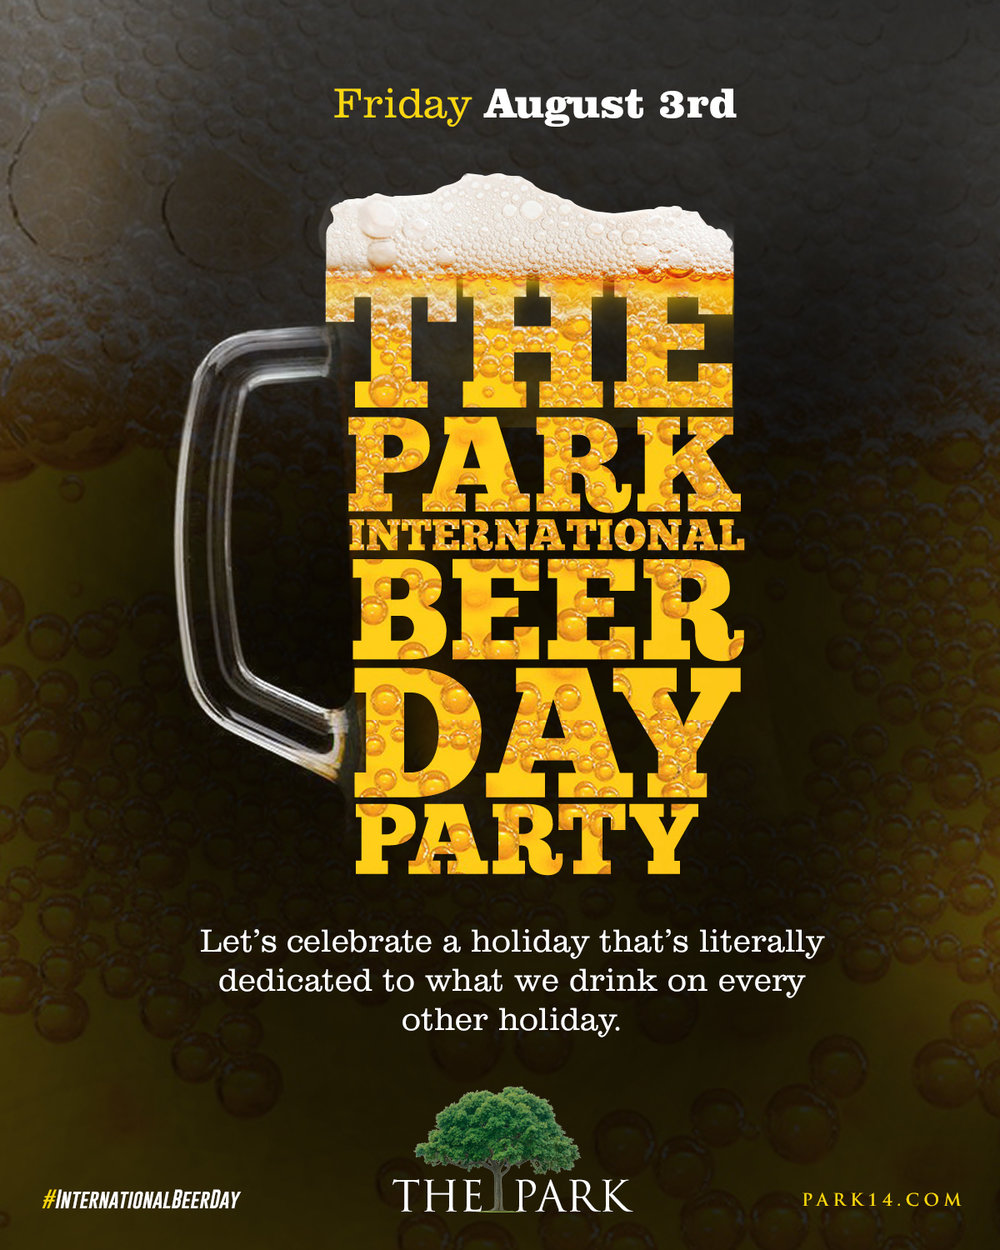 International Beer Day Flyer.jpg